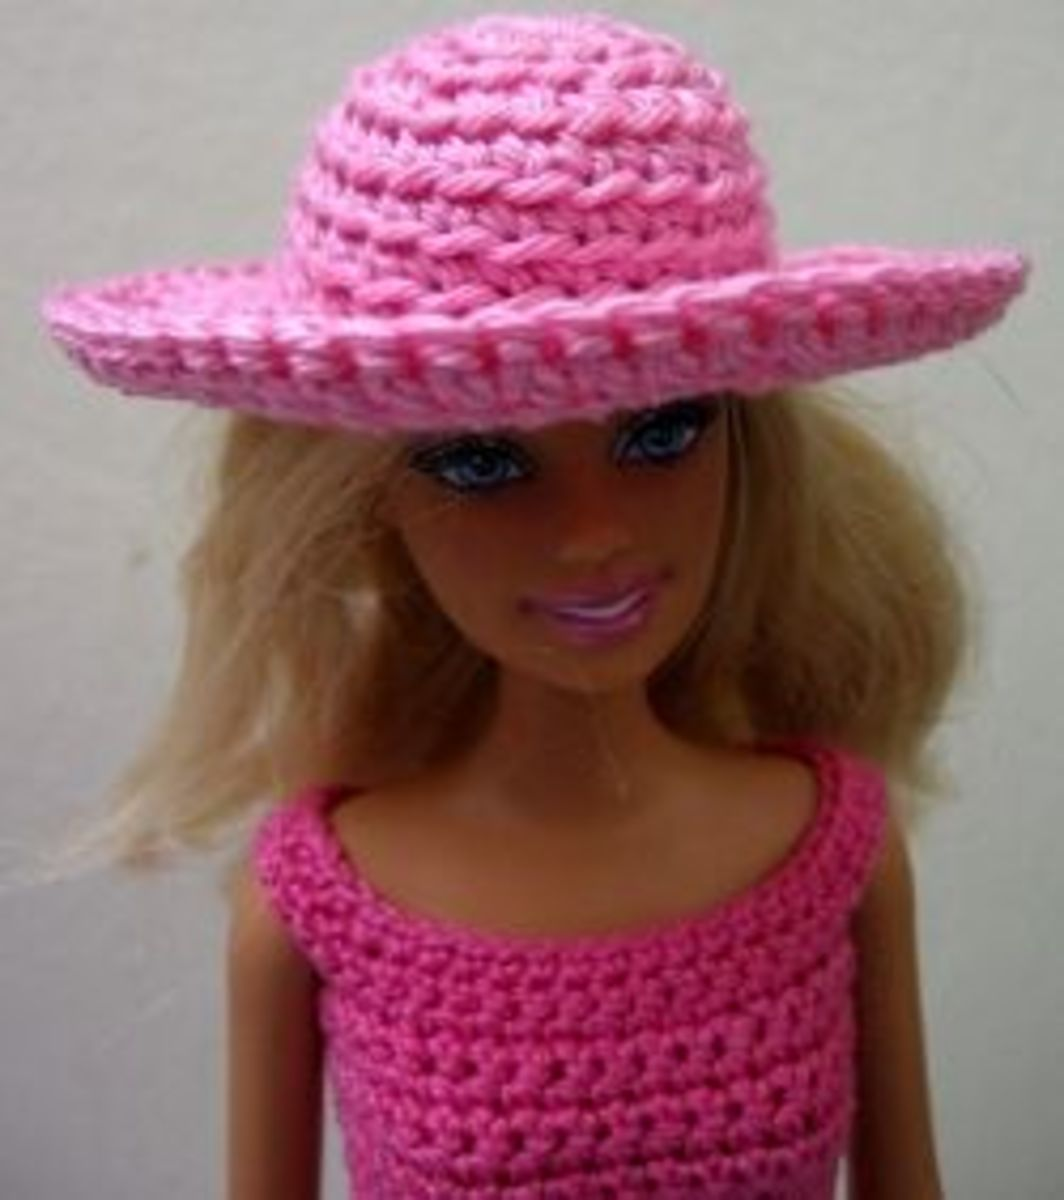 how to crochet barbie doll hat (pattern) | hubpages